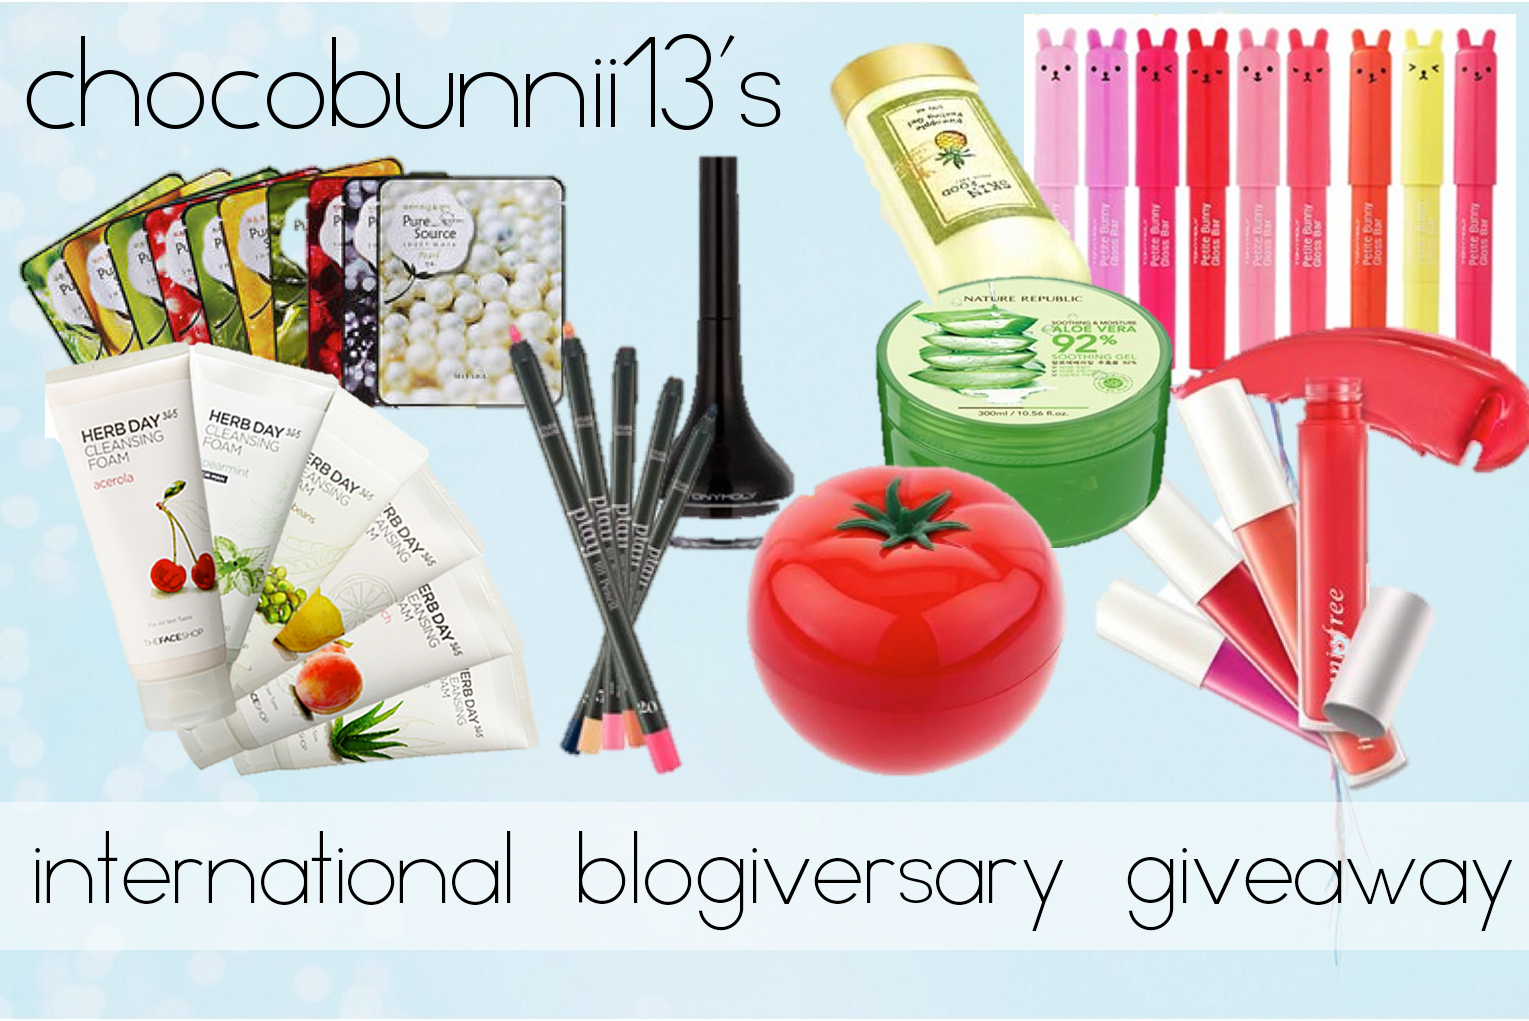 1ST BLOGIVERSARY INTERNATIONAL GIVEAWAY!